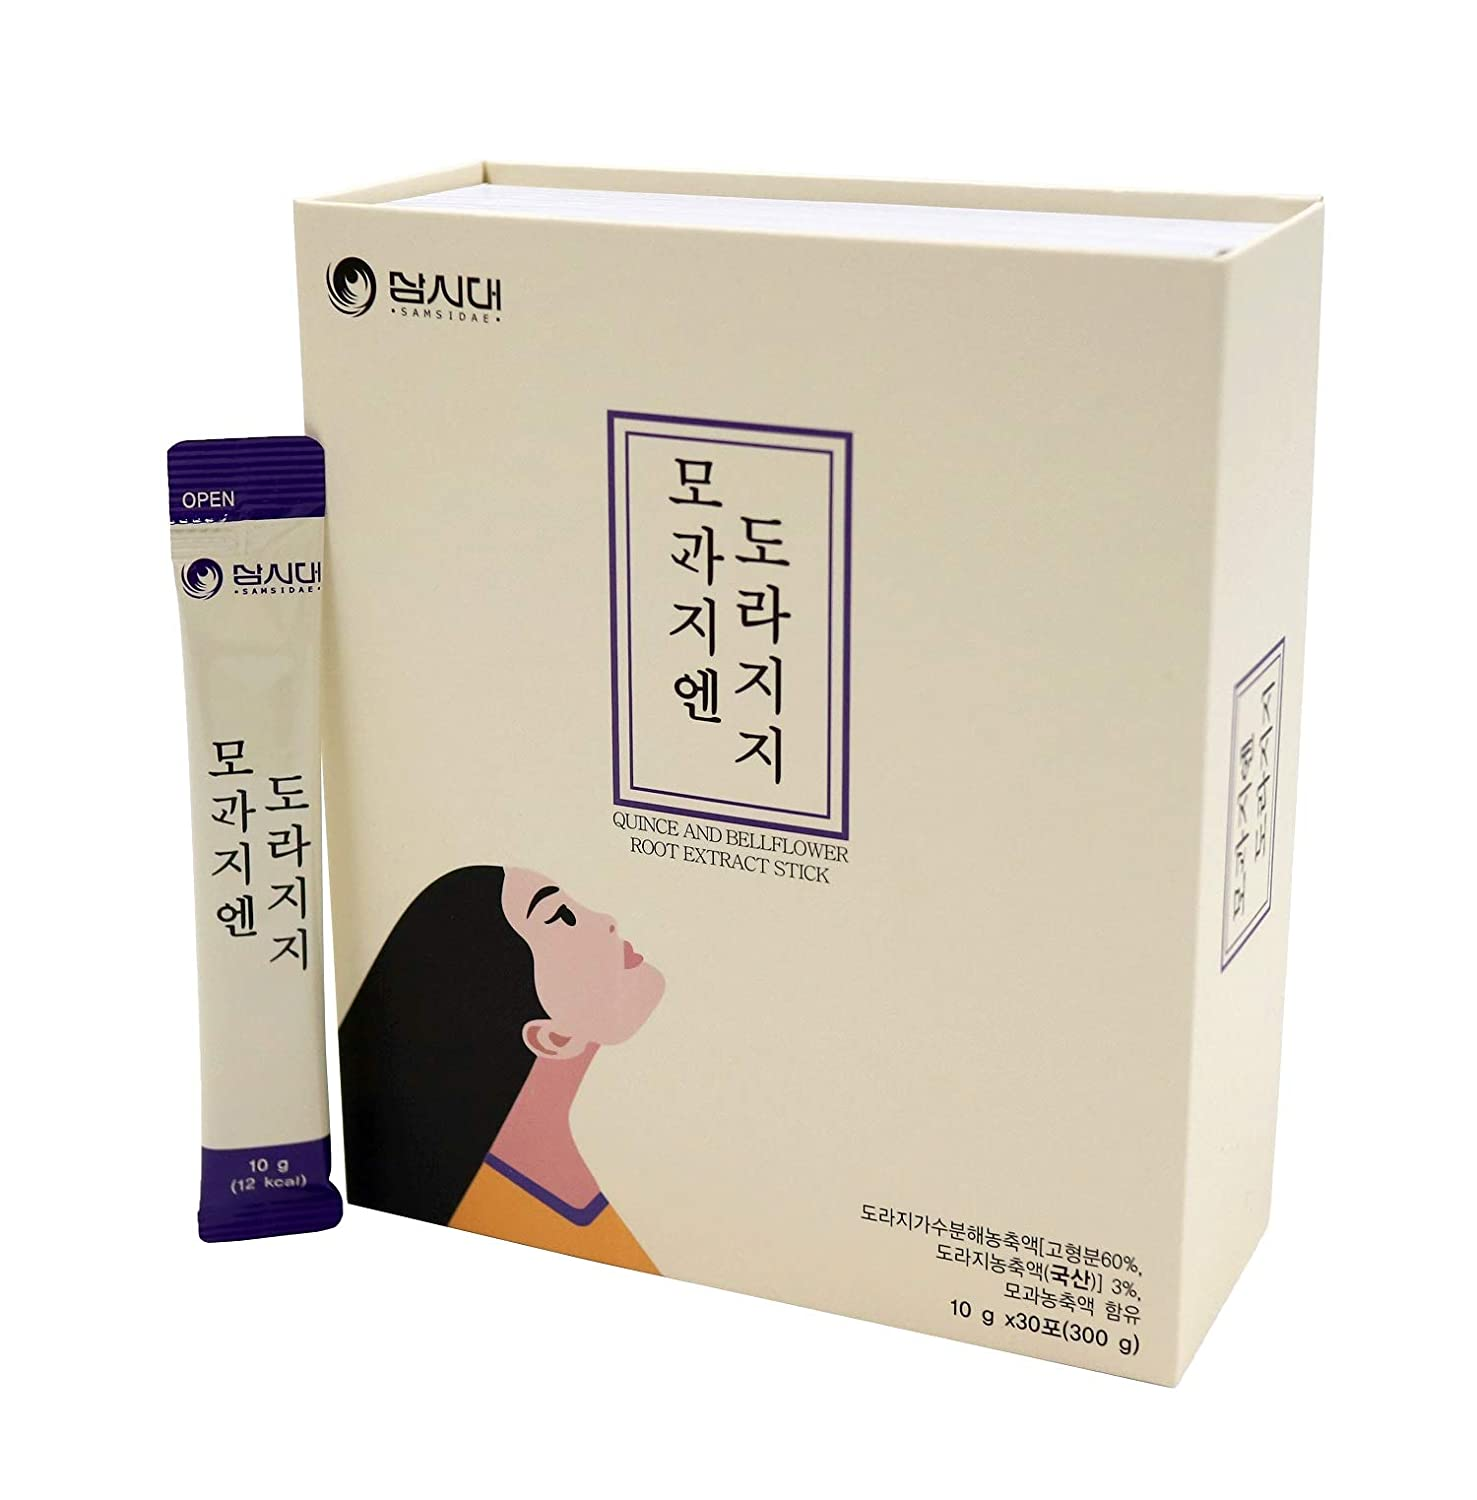 SamSiDae Korean Bellflower Root Extract, Pear Extract and Quince Extract Stick (10g X 30 stick pouches). Good source of Fiber, Potassium, Magnesium, Vitamin C&K. Men, Women and all ages.